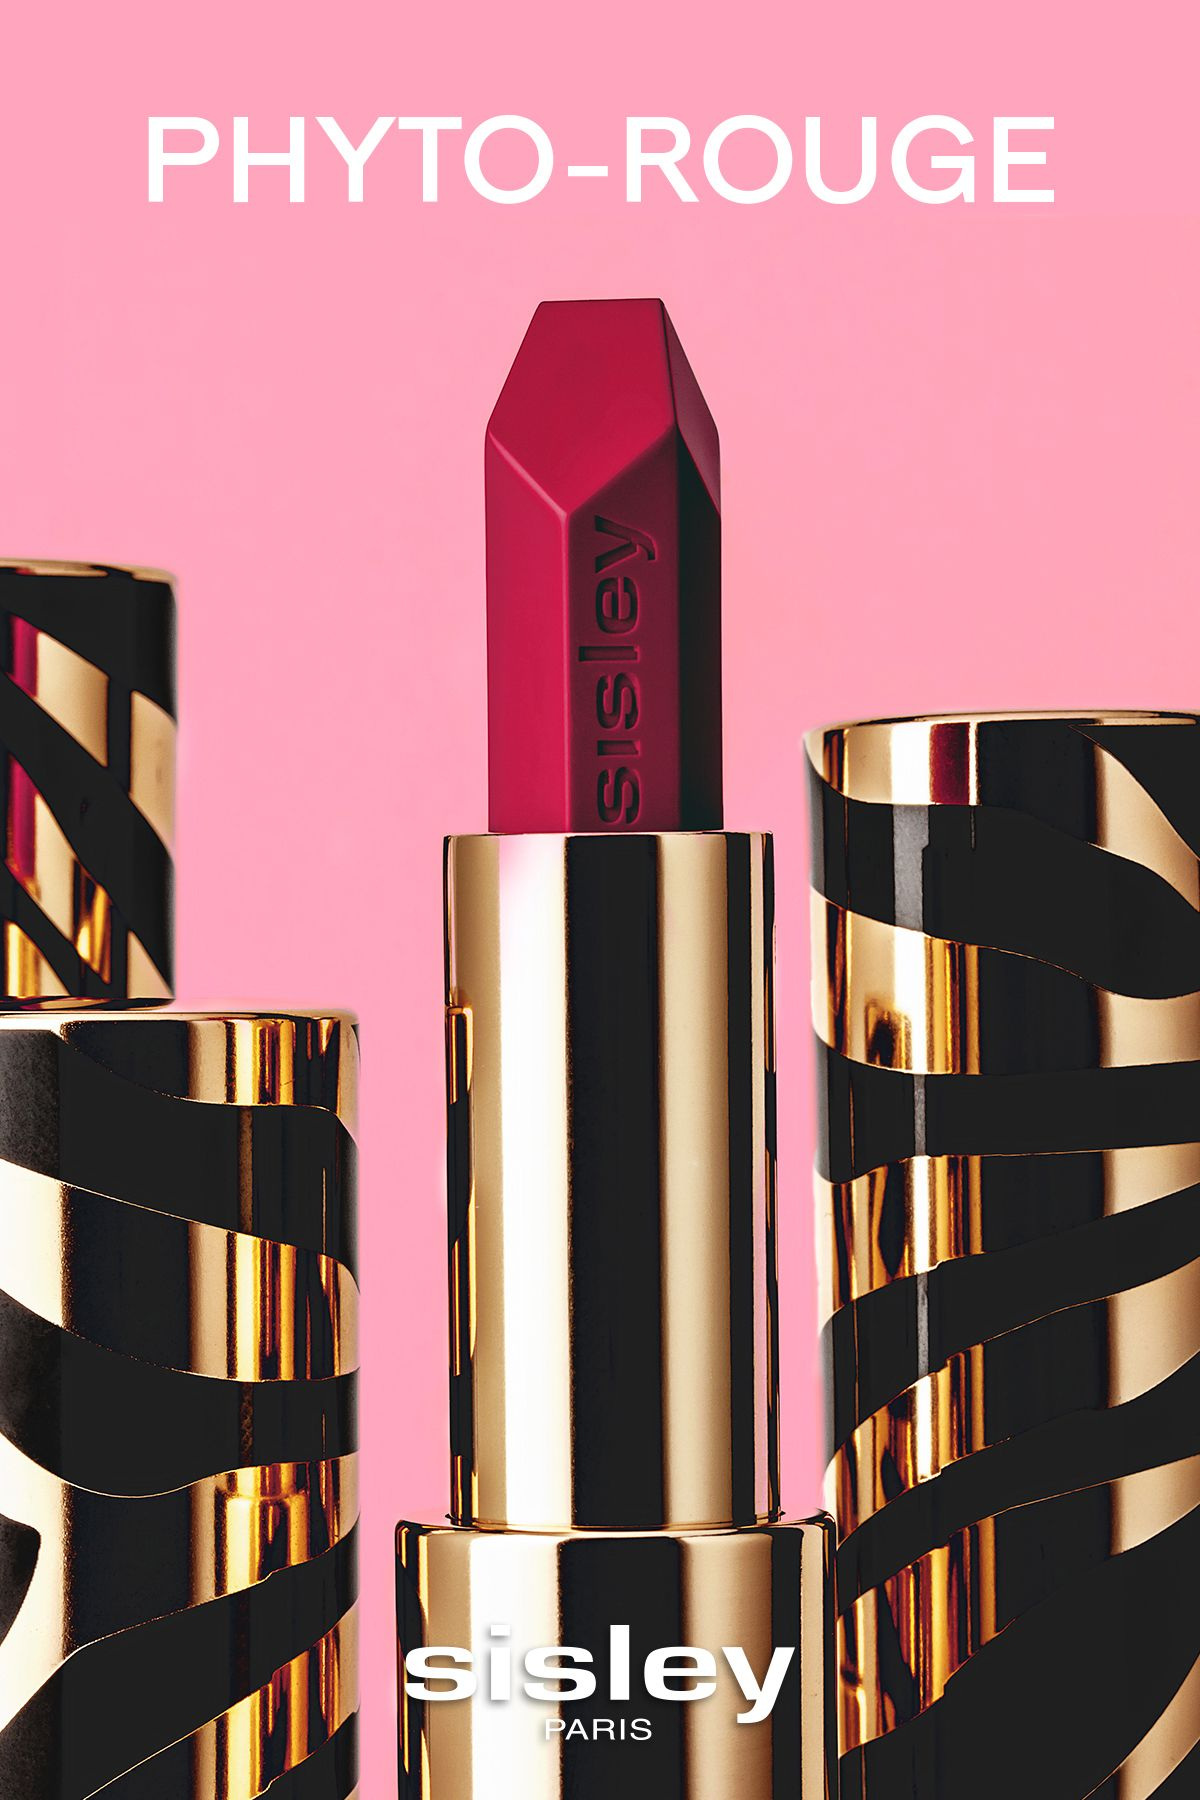 Le Phyto Rouge N°23 Rose Delhi in 2020 | Intense lipstick, The balm, Pure  products